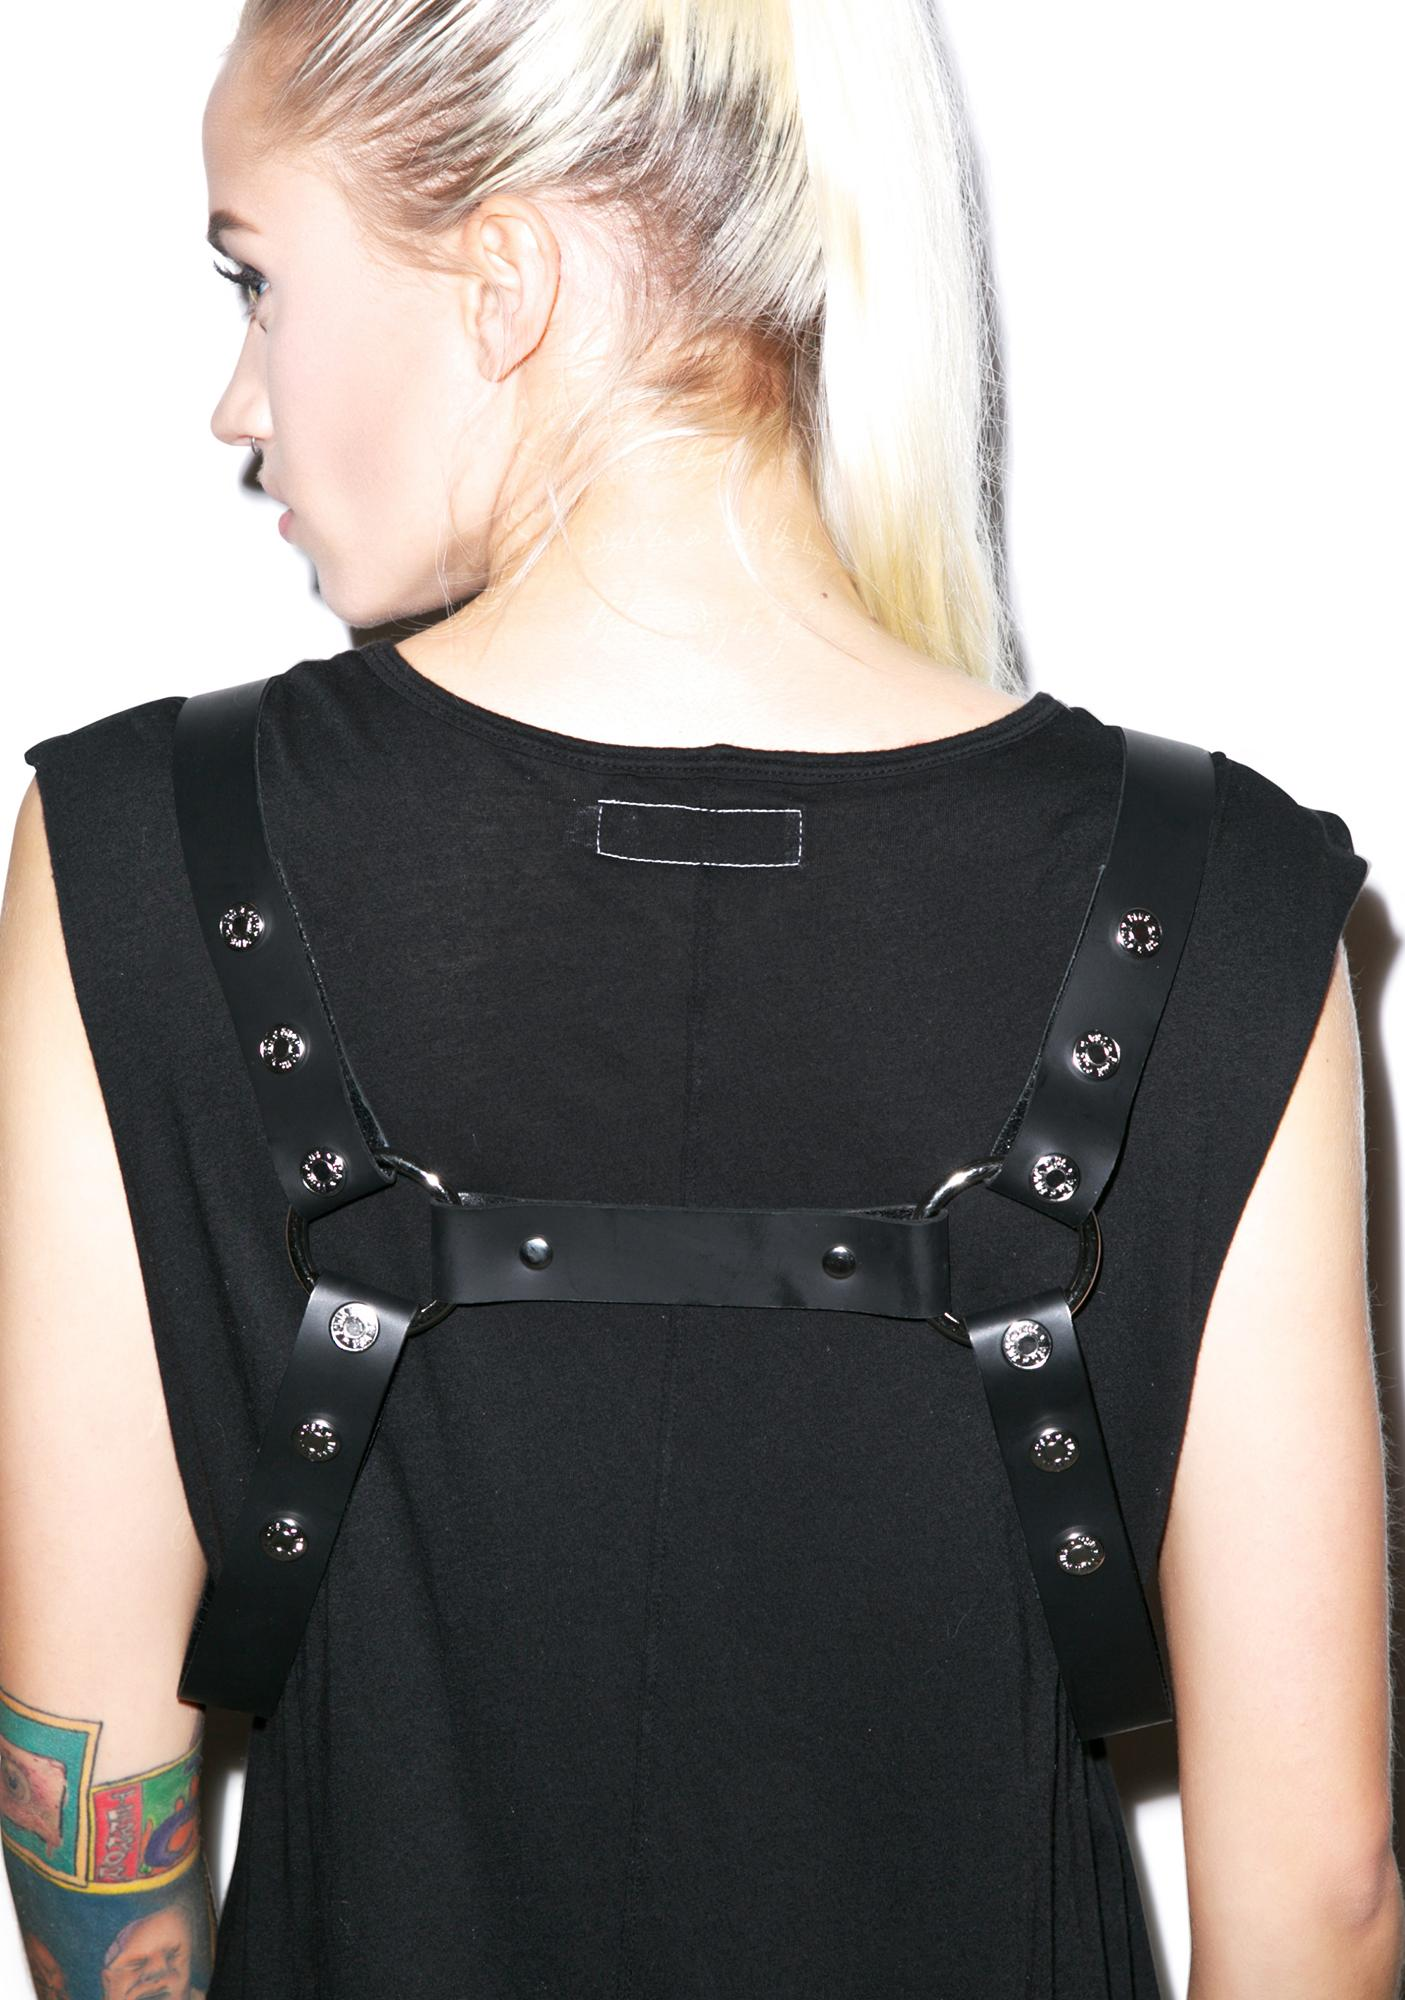 Club Exx Cuffing Season Handcuff Harness